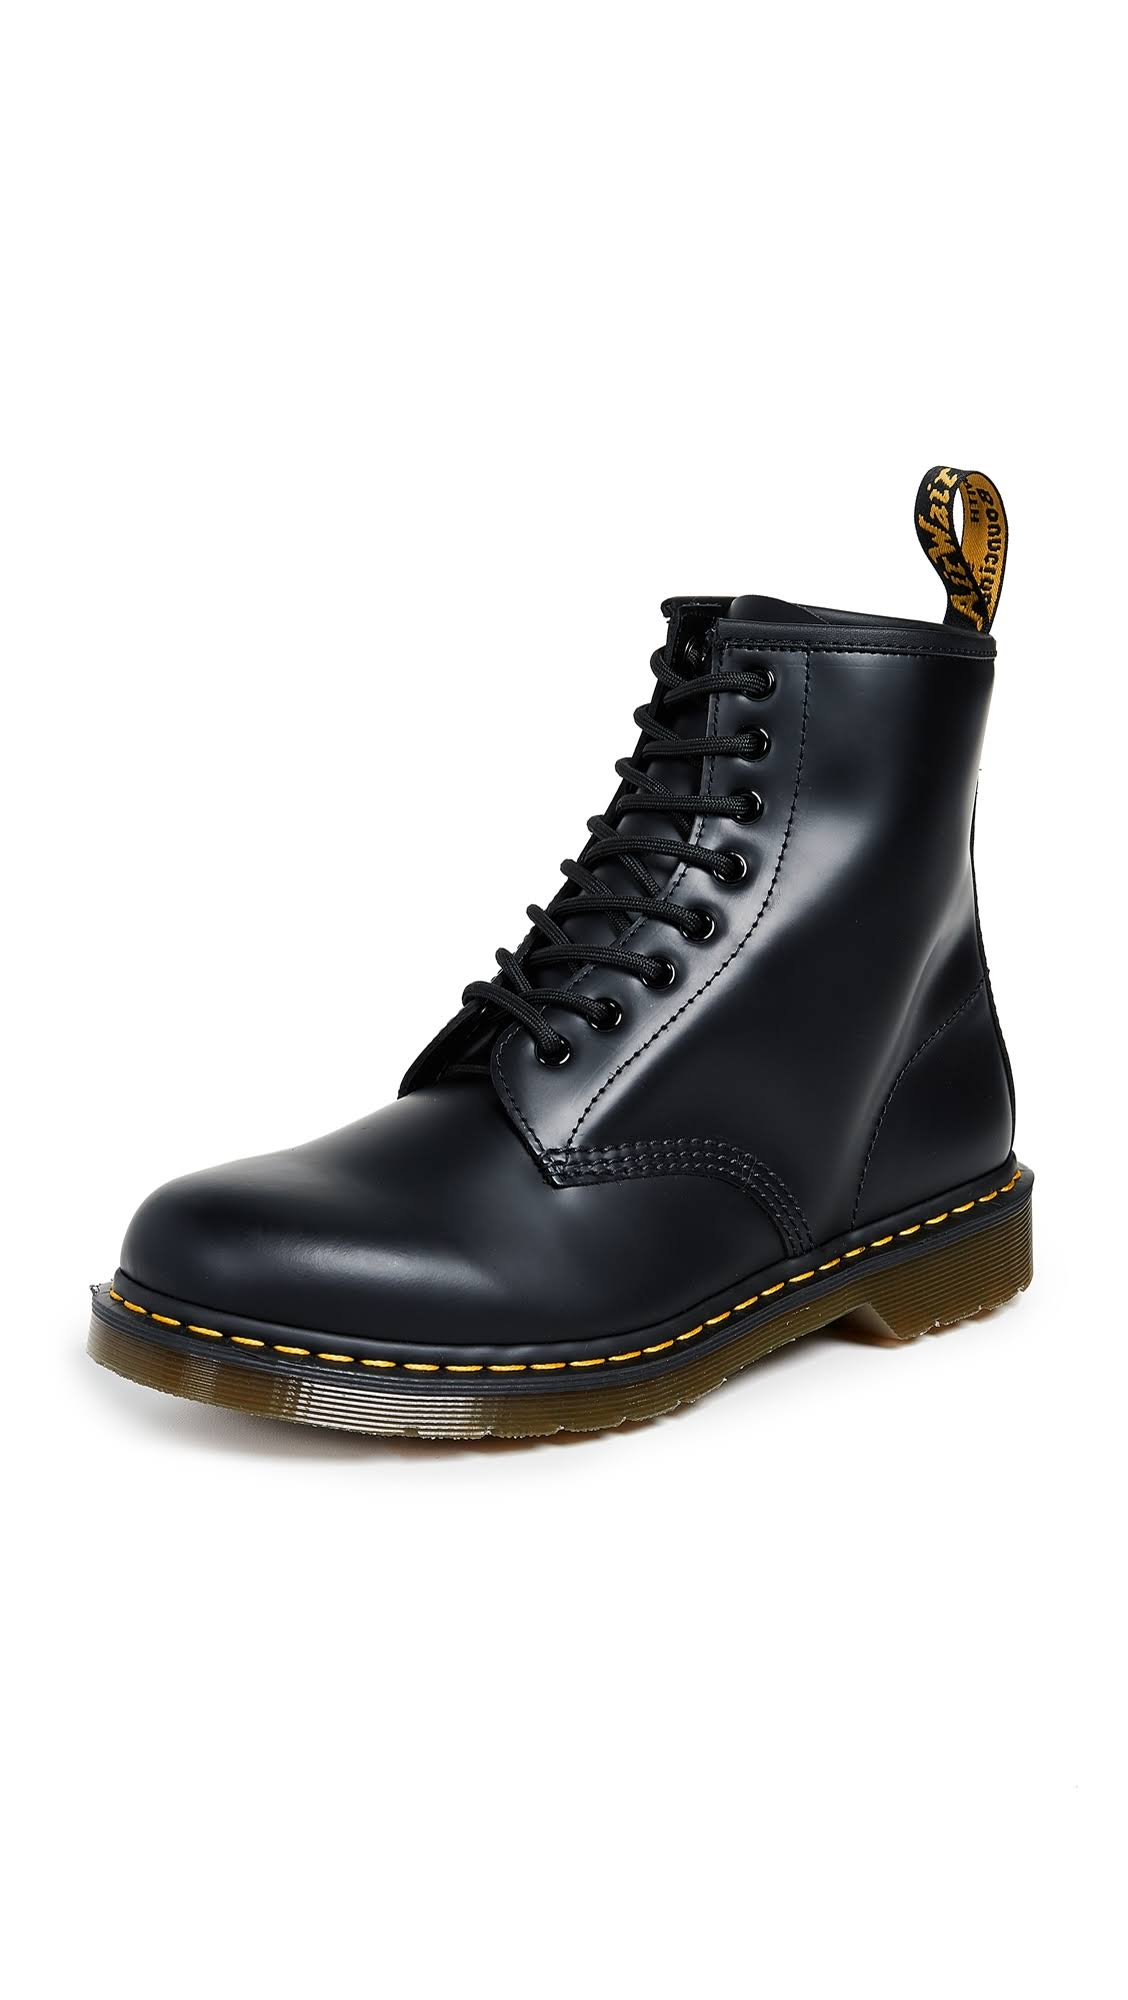 Boot Dr Smooth Black Medium 1460 8 Martens BBaq1WE